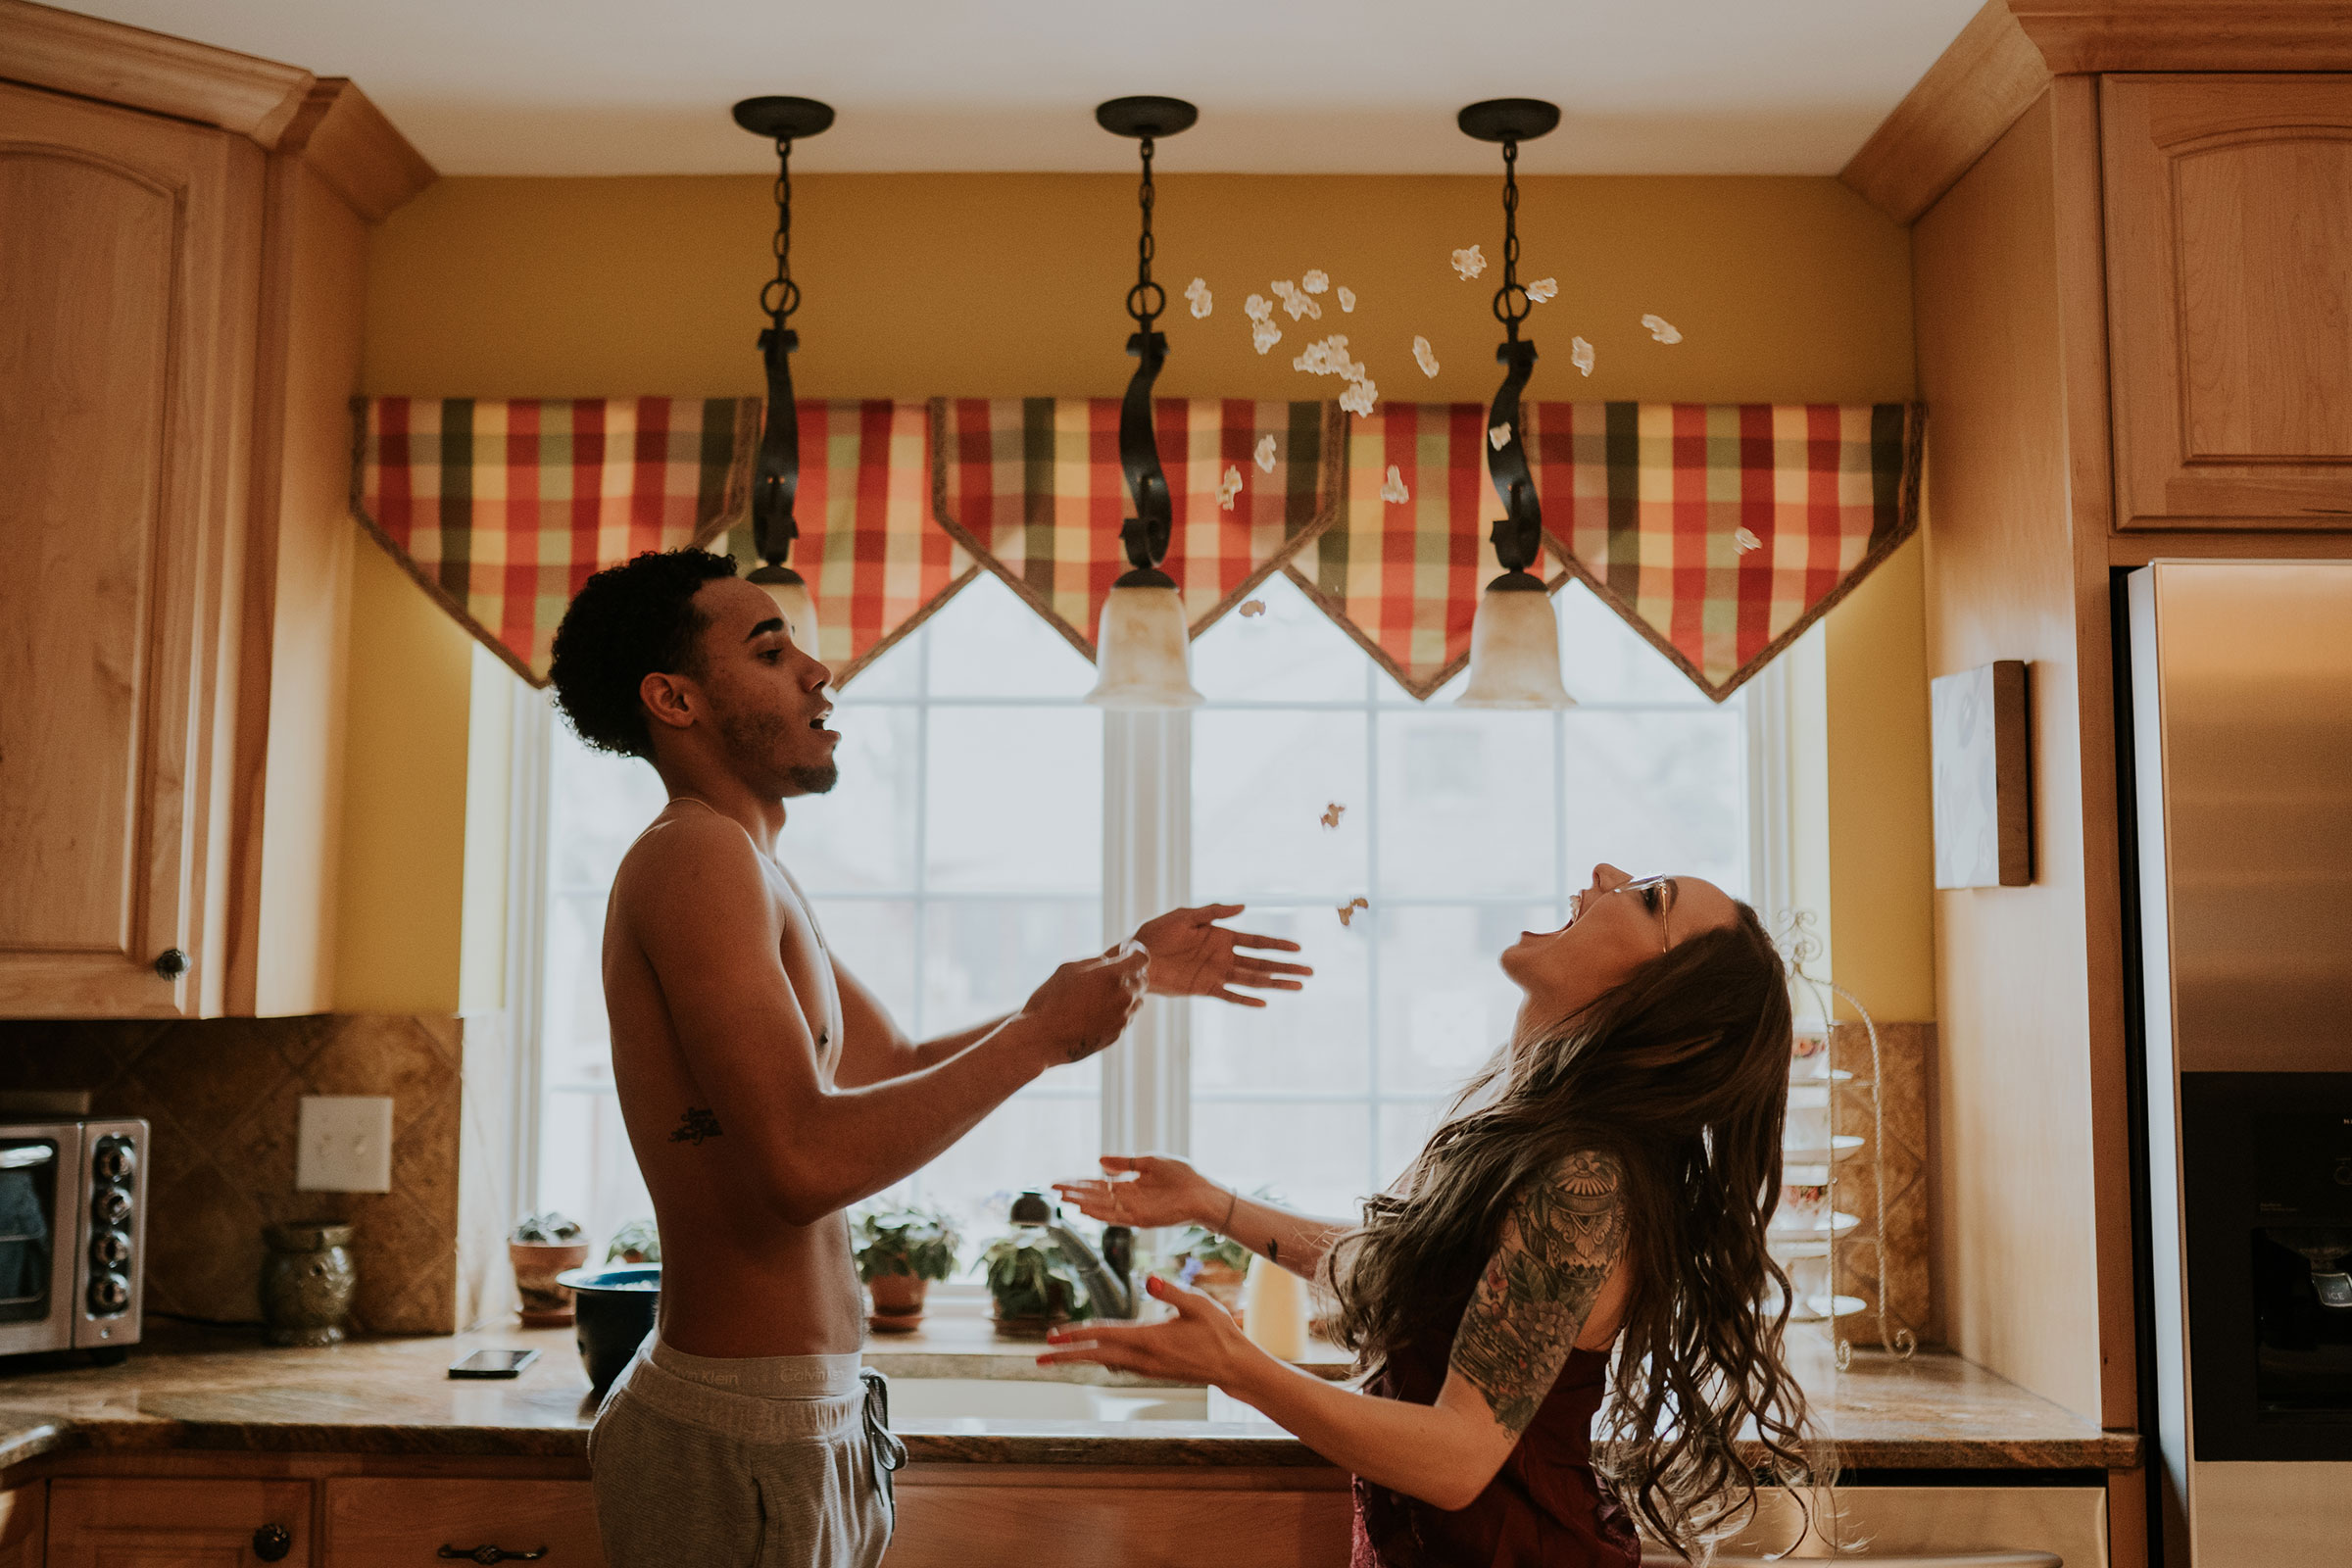 couple-playing-catch-with-popcorn-in-kitchen-engagement-desmoines-iowa-raelyn-ramey-photography.jpg